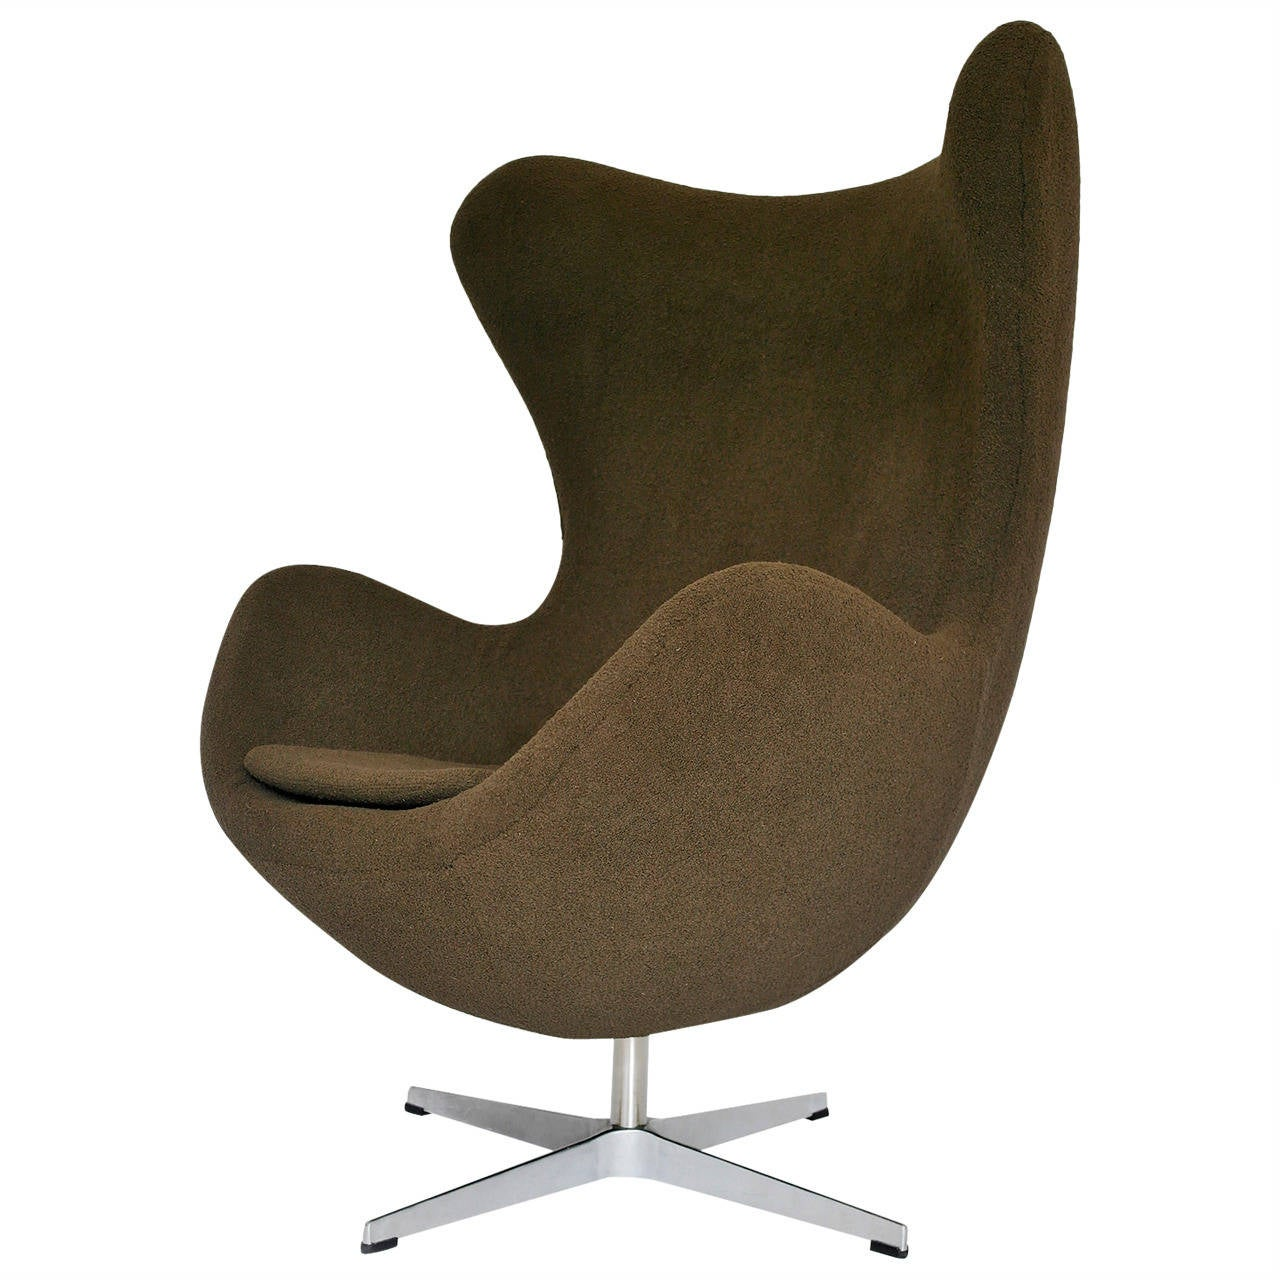 egg chair by arne jacobsen fritz hansen style at 1stdibs. Black Bedroom Furniture Sets. Home Design Ideas